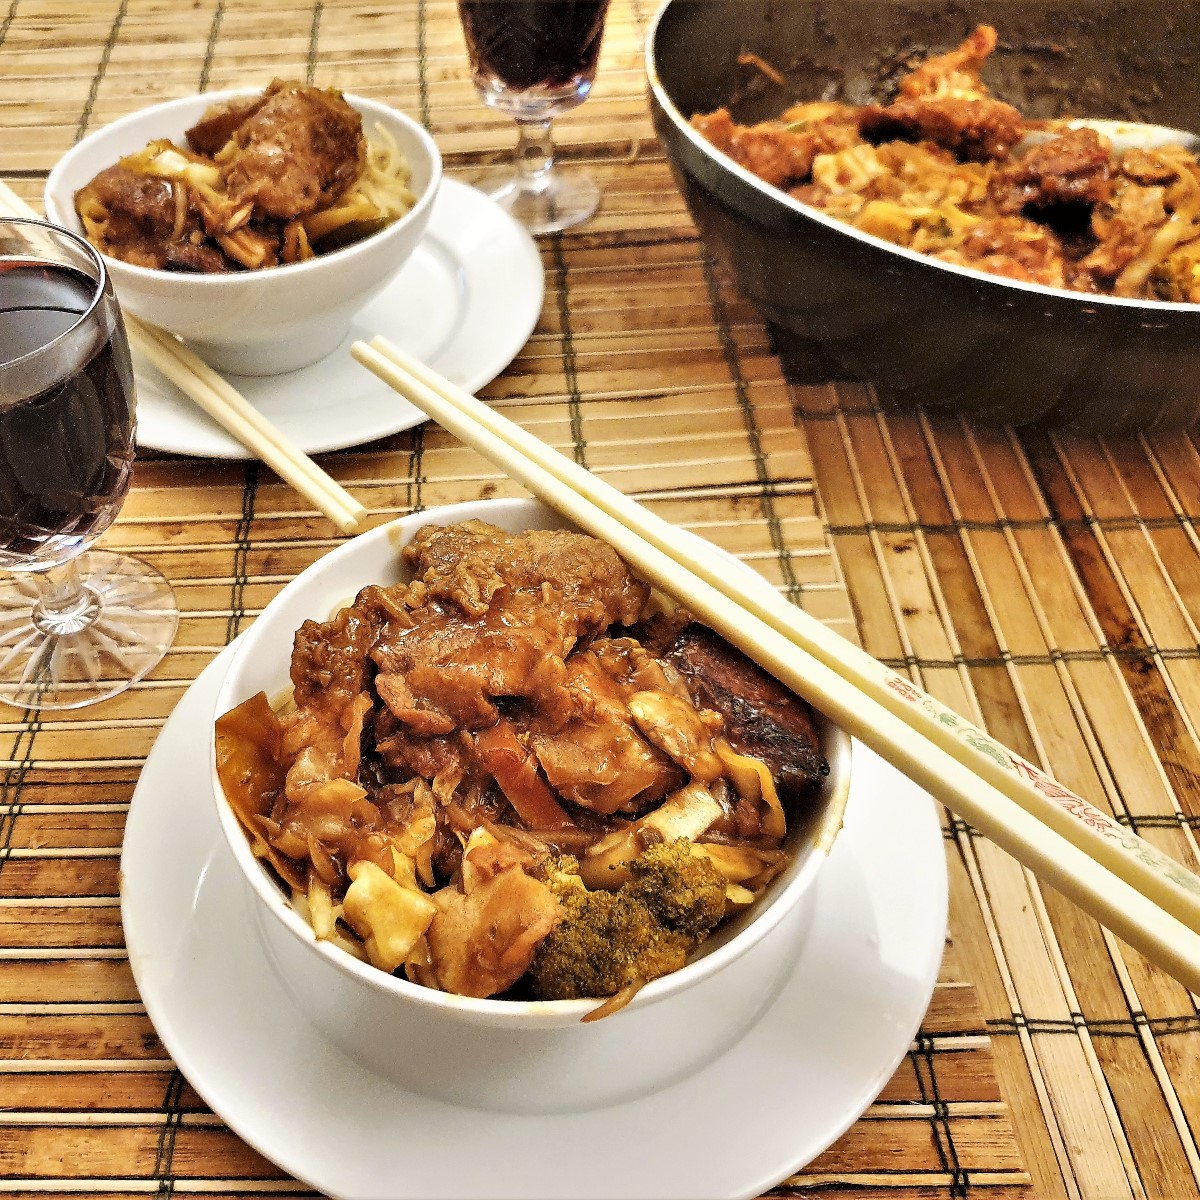 A bowl of szechual chicken with chopsticks in the foreground with a wok of chicken in the background